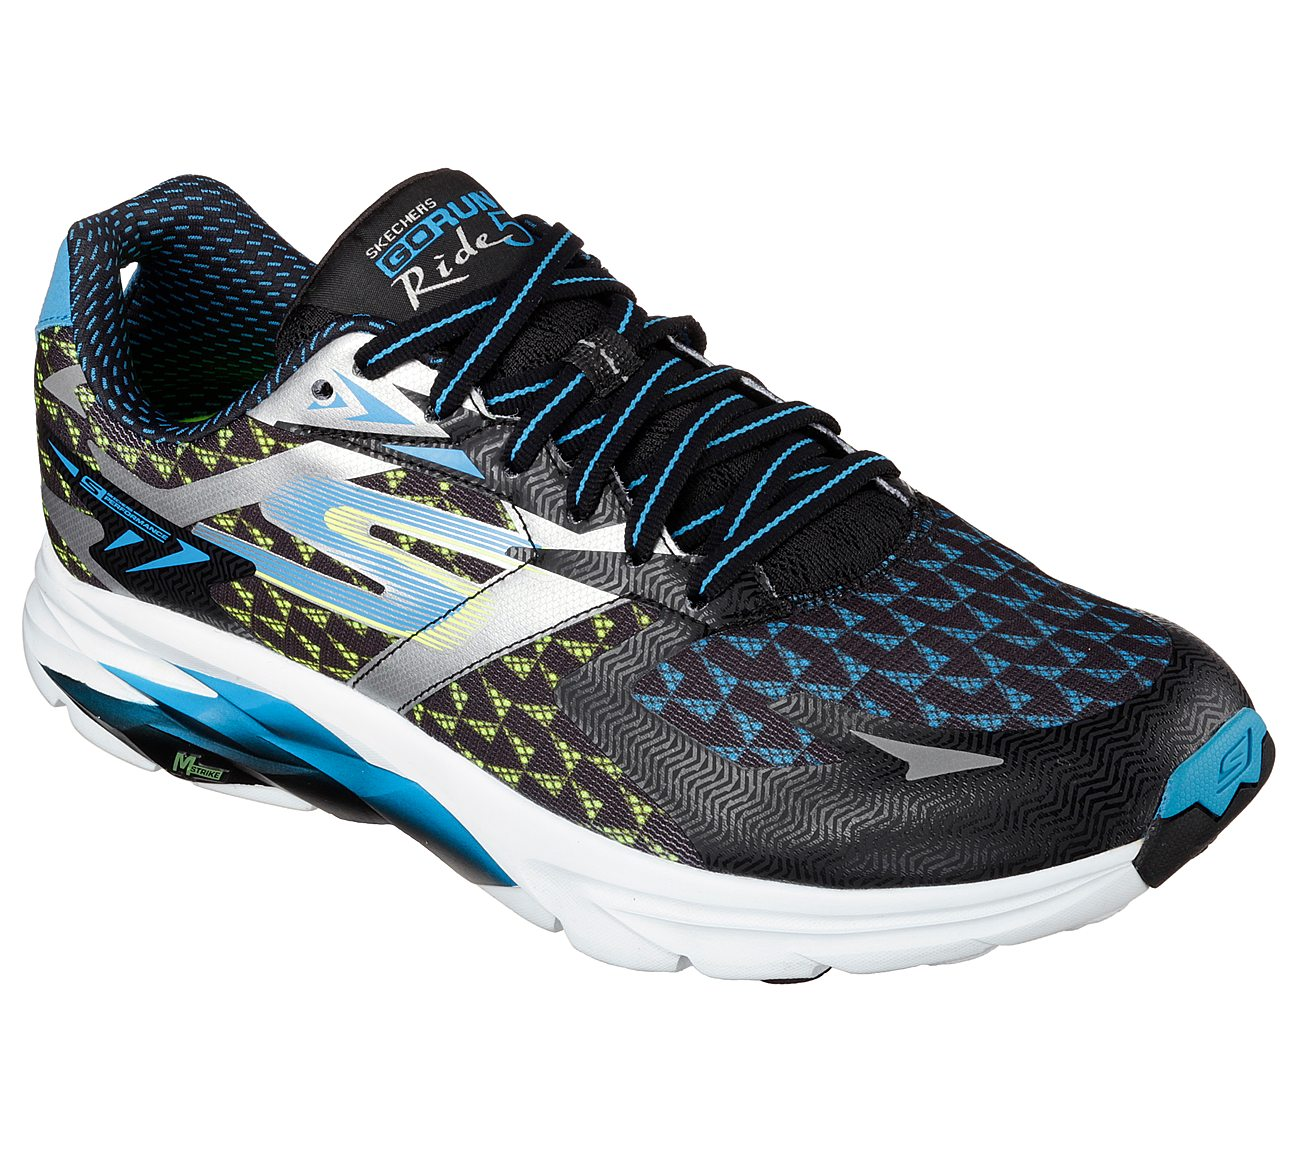 Skechers GOrun Ride 5 GOrun Shoes